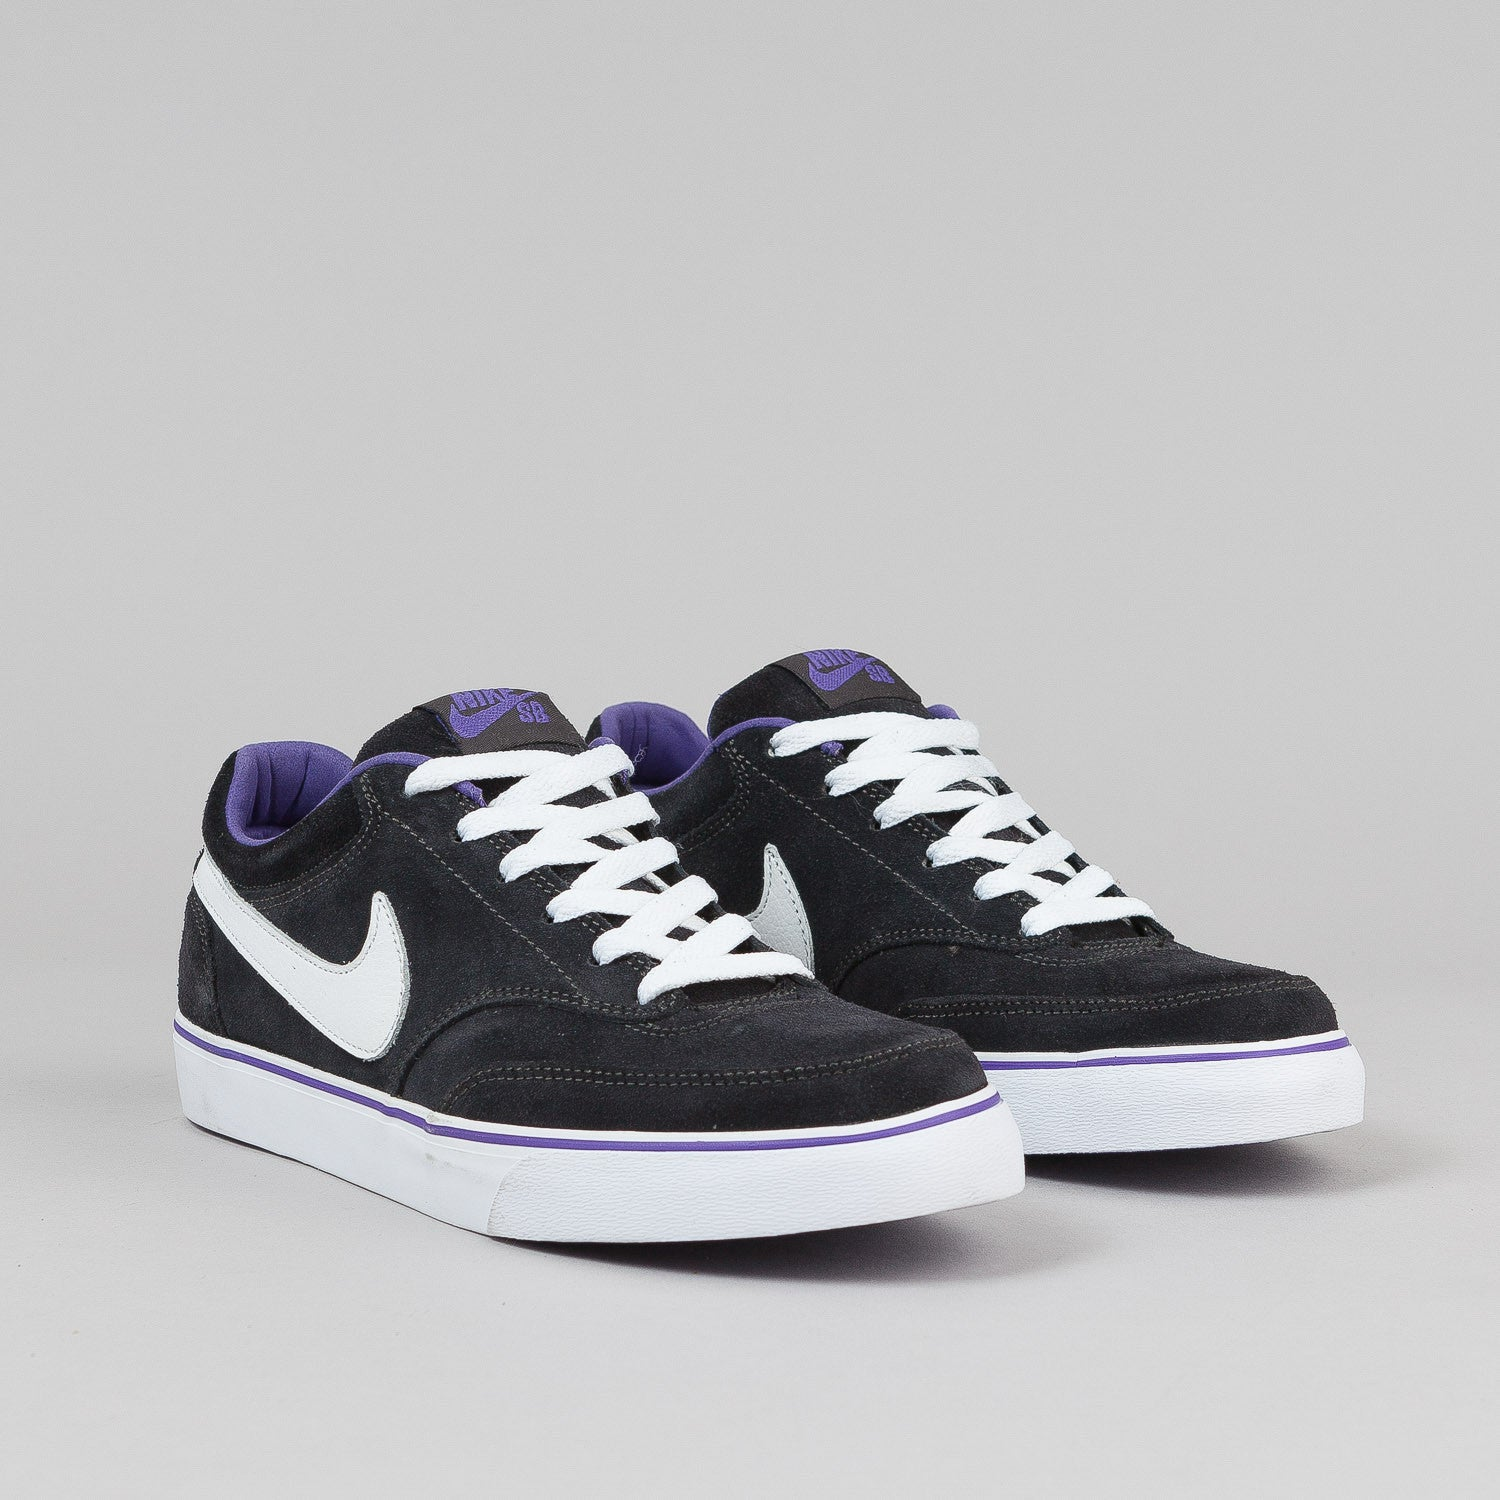 Nike SB Air Harbor Shoes - Dark Charcoal / White